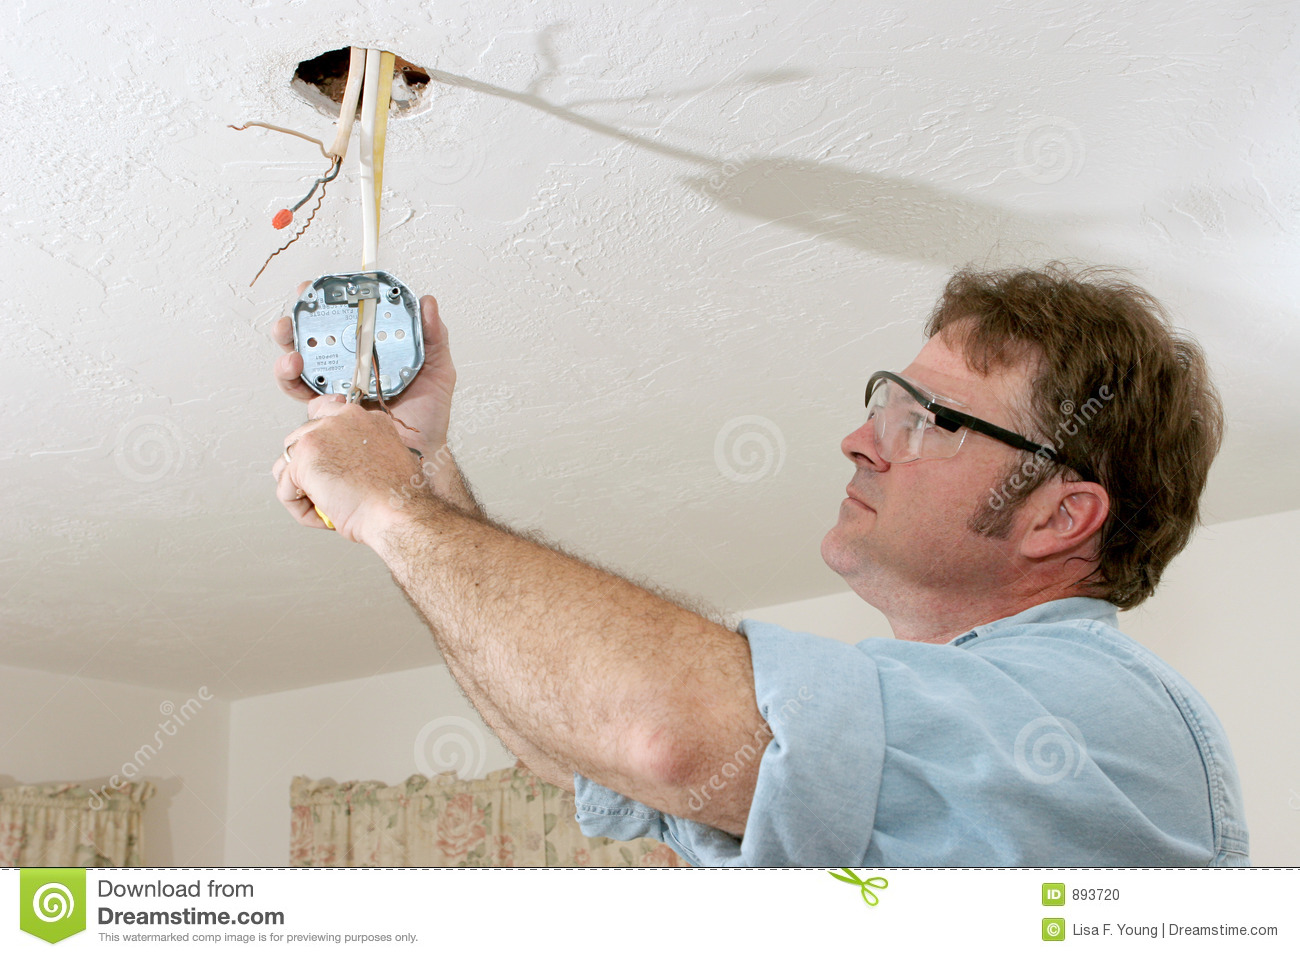 Electrician Wires Ceiling Box Stock Photo Image Of Neutral Copper Wiring Through Walls And Ceilings